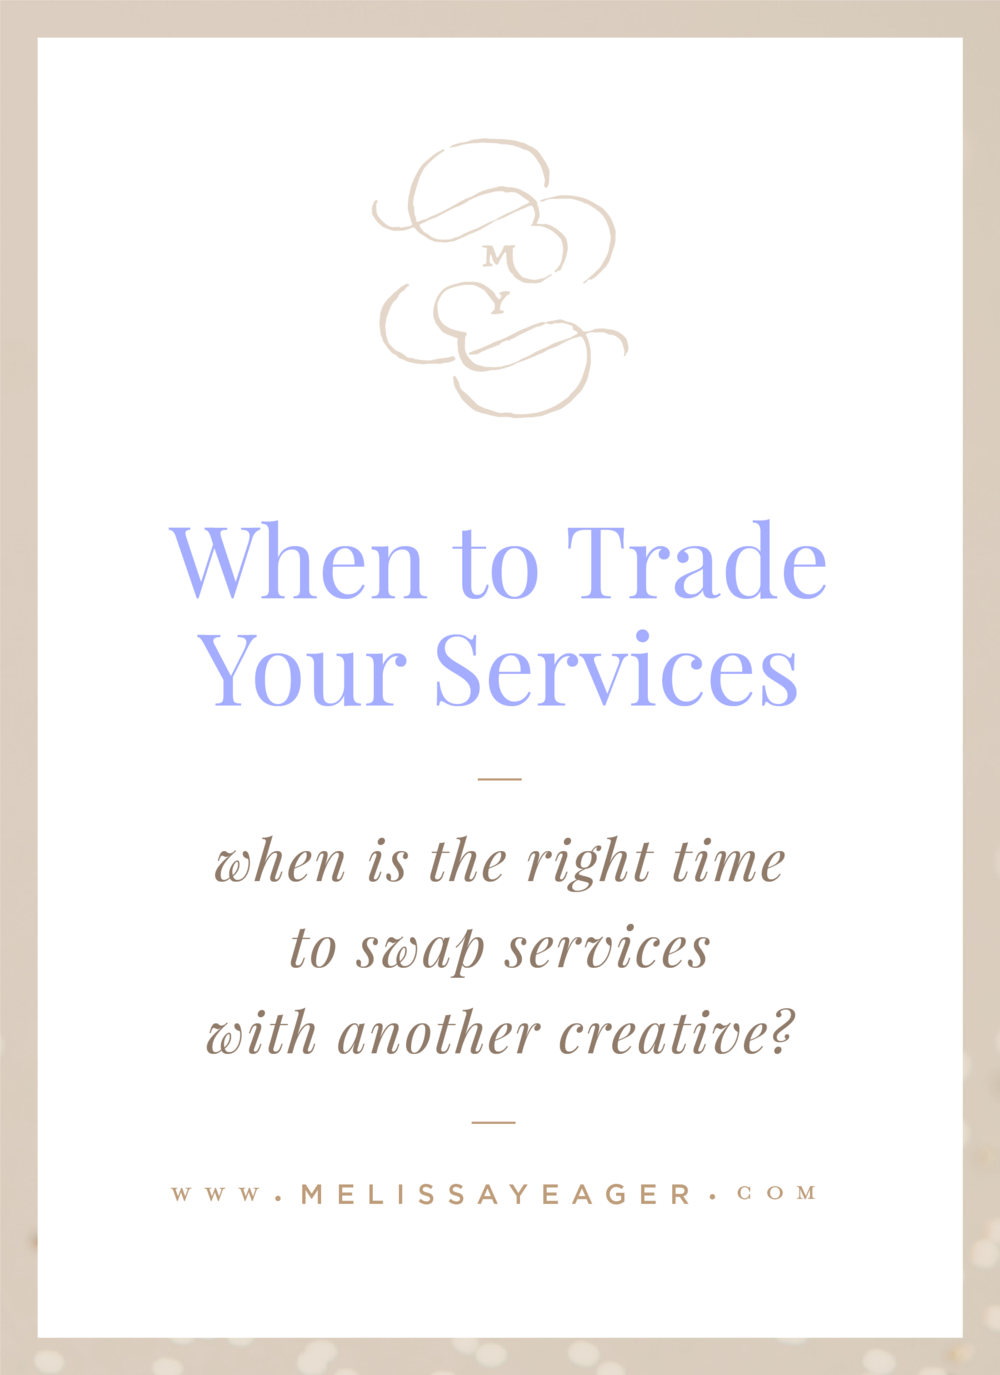 When to Trade Your Services - when is the right time to swap services with another creative?